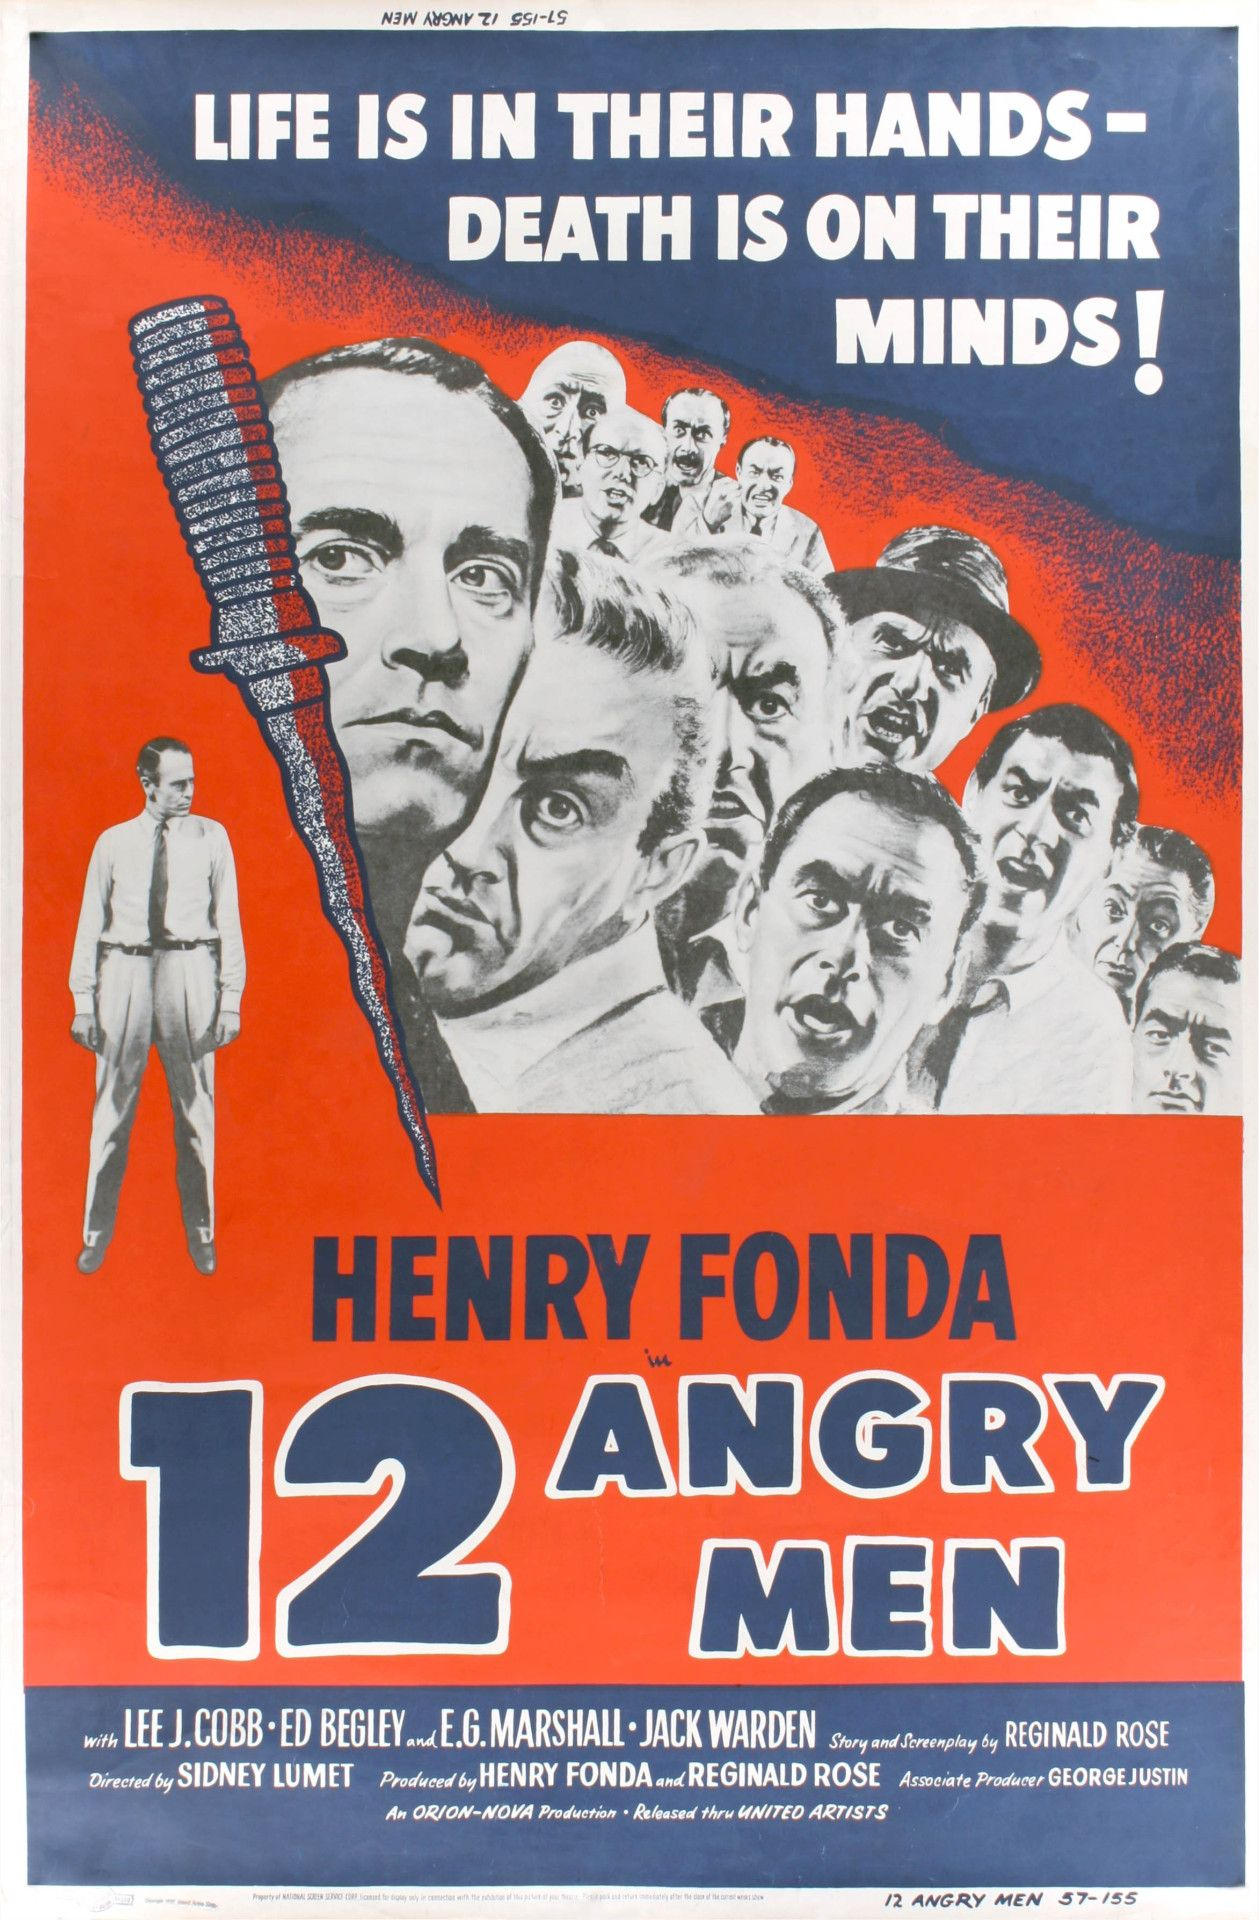 12 Angry Men - The First 10 minutes - thescriptblog.com